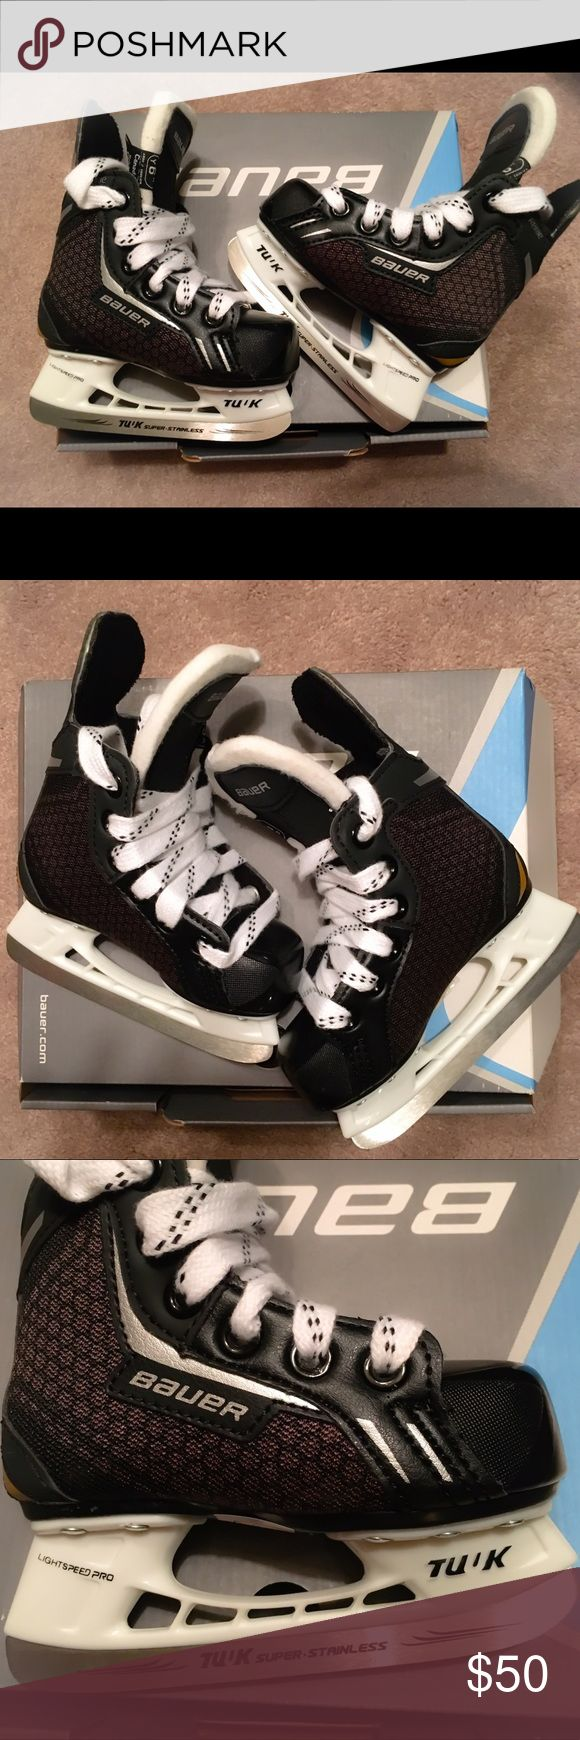 Bauer Toddler Ice Skates Size 6 Bauer Ice skates for a toddler boy (or girl). Black with white and black laces. Brand new never used with box. Size 6 Other